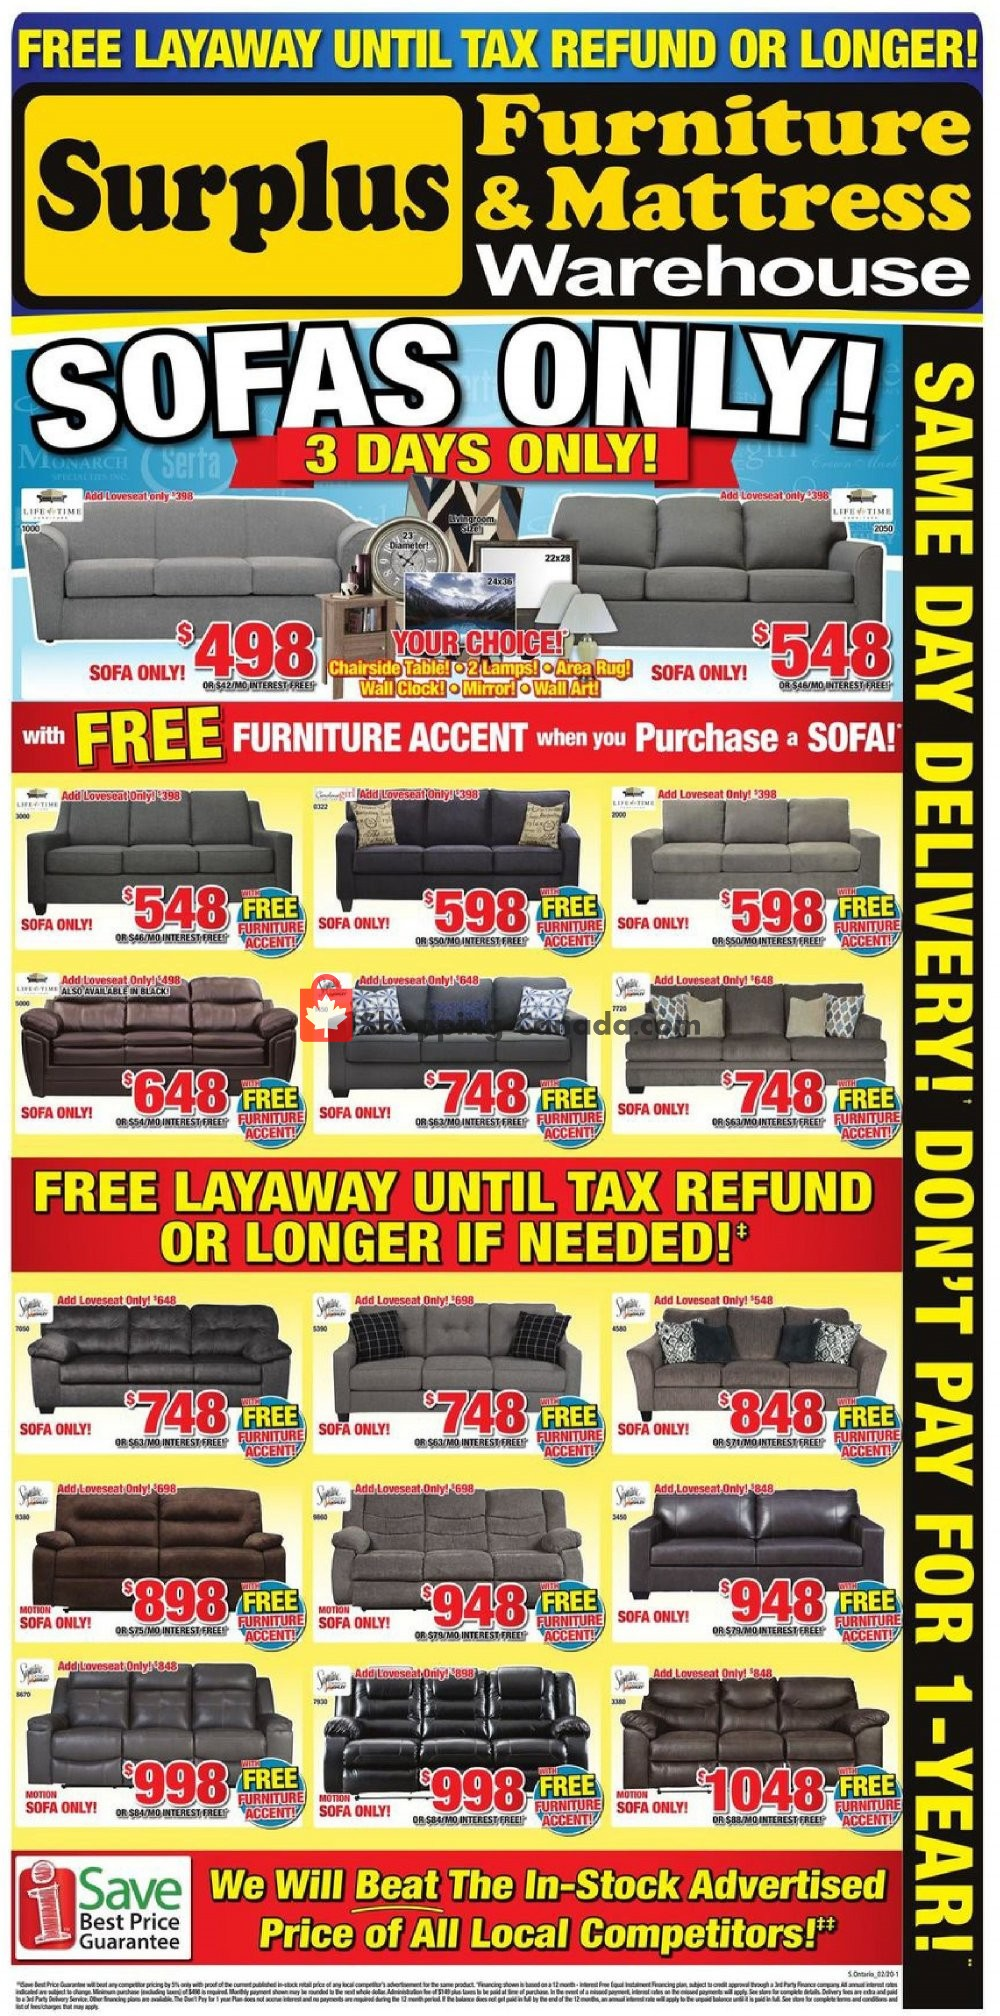 Flyer Surplus Furniture And Mattress Store Canada - from Tuesday January 28, 2020 to Monday February 3, 2020